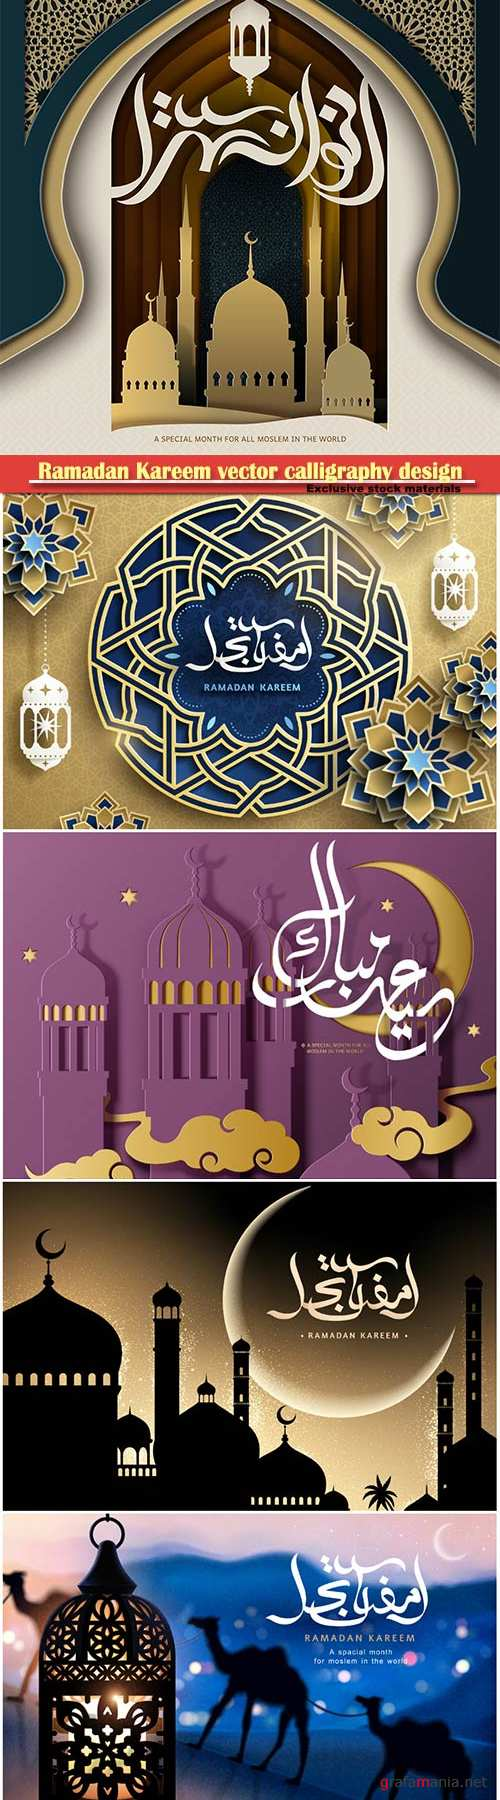 Ramadan Kareem vector calligraphy design with decorative floral pattern,mosque silhouette, crescent and glittering islamic background # 6